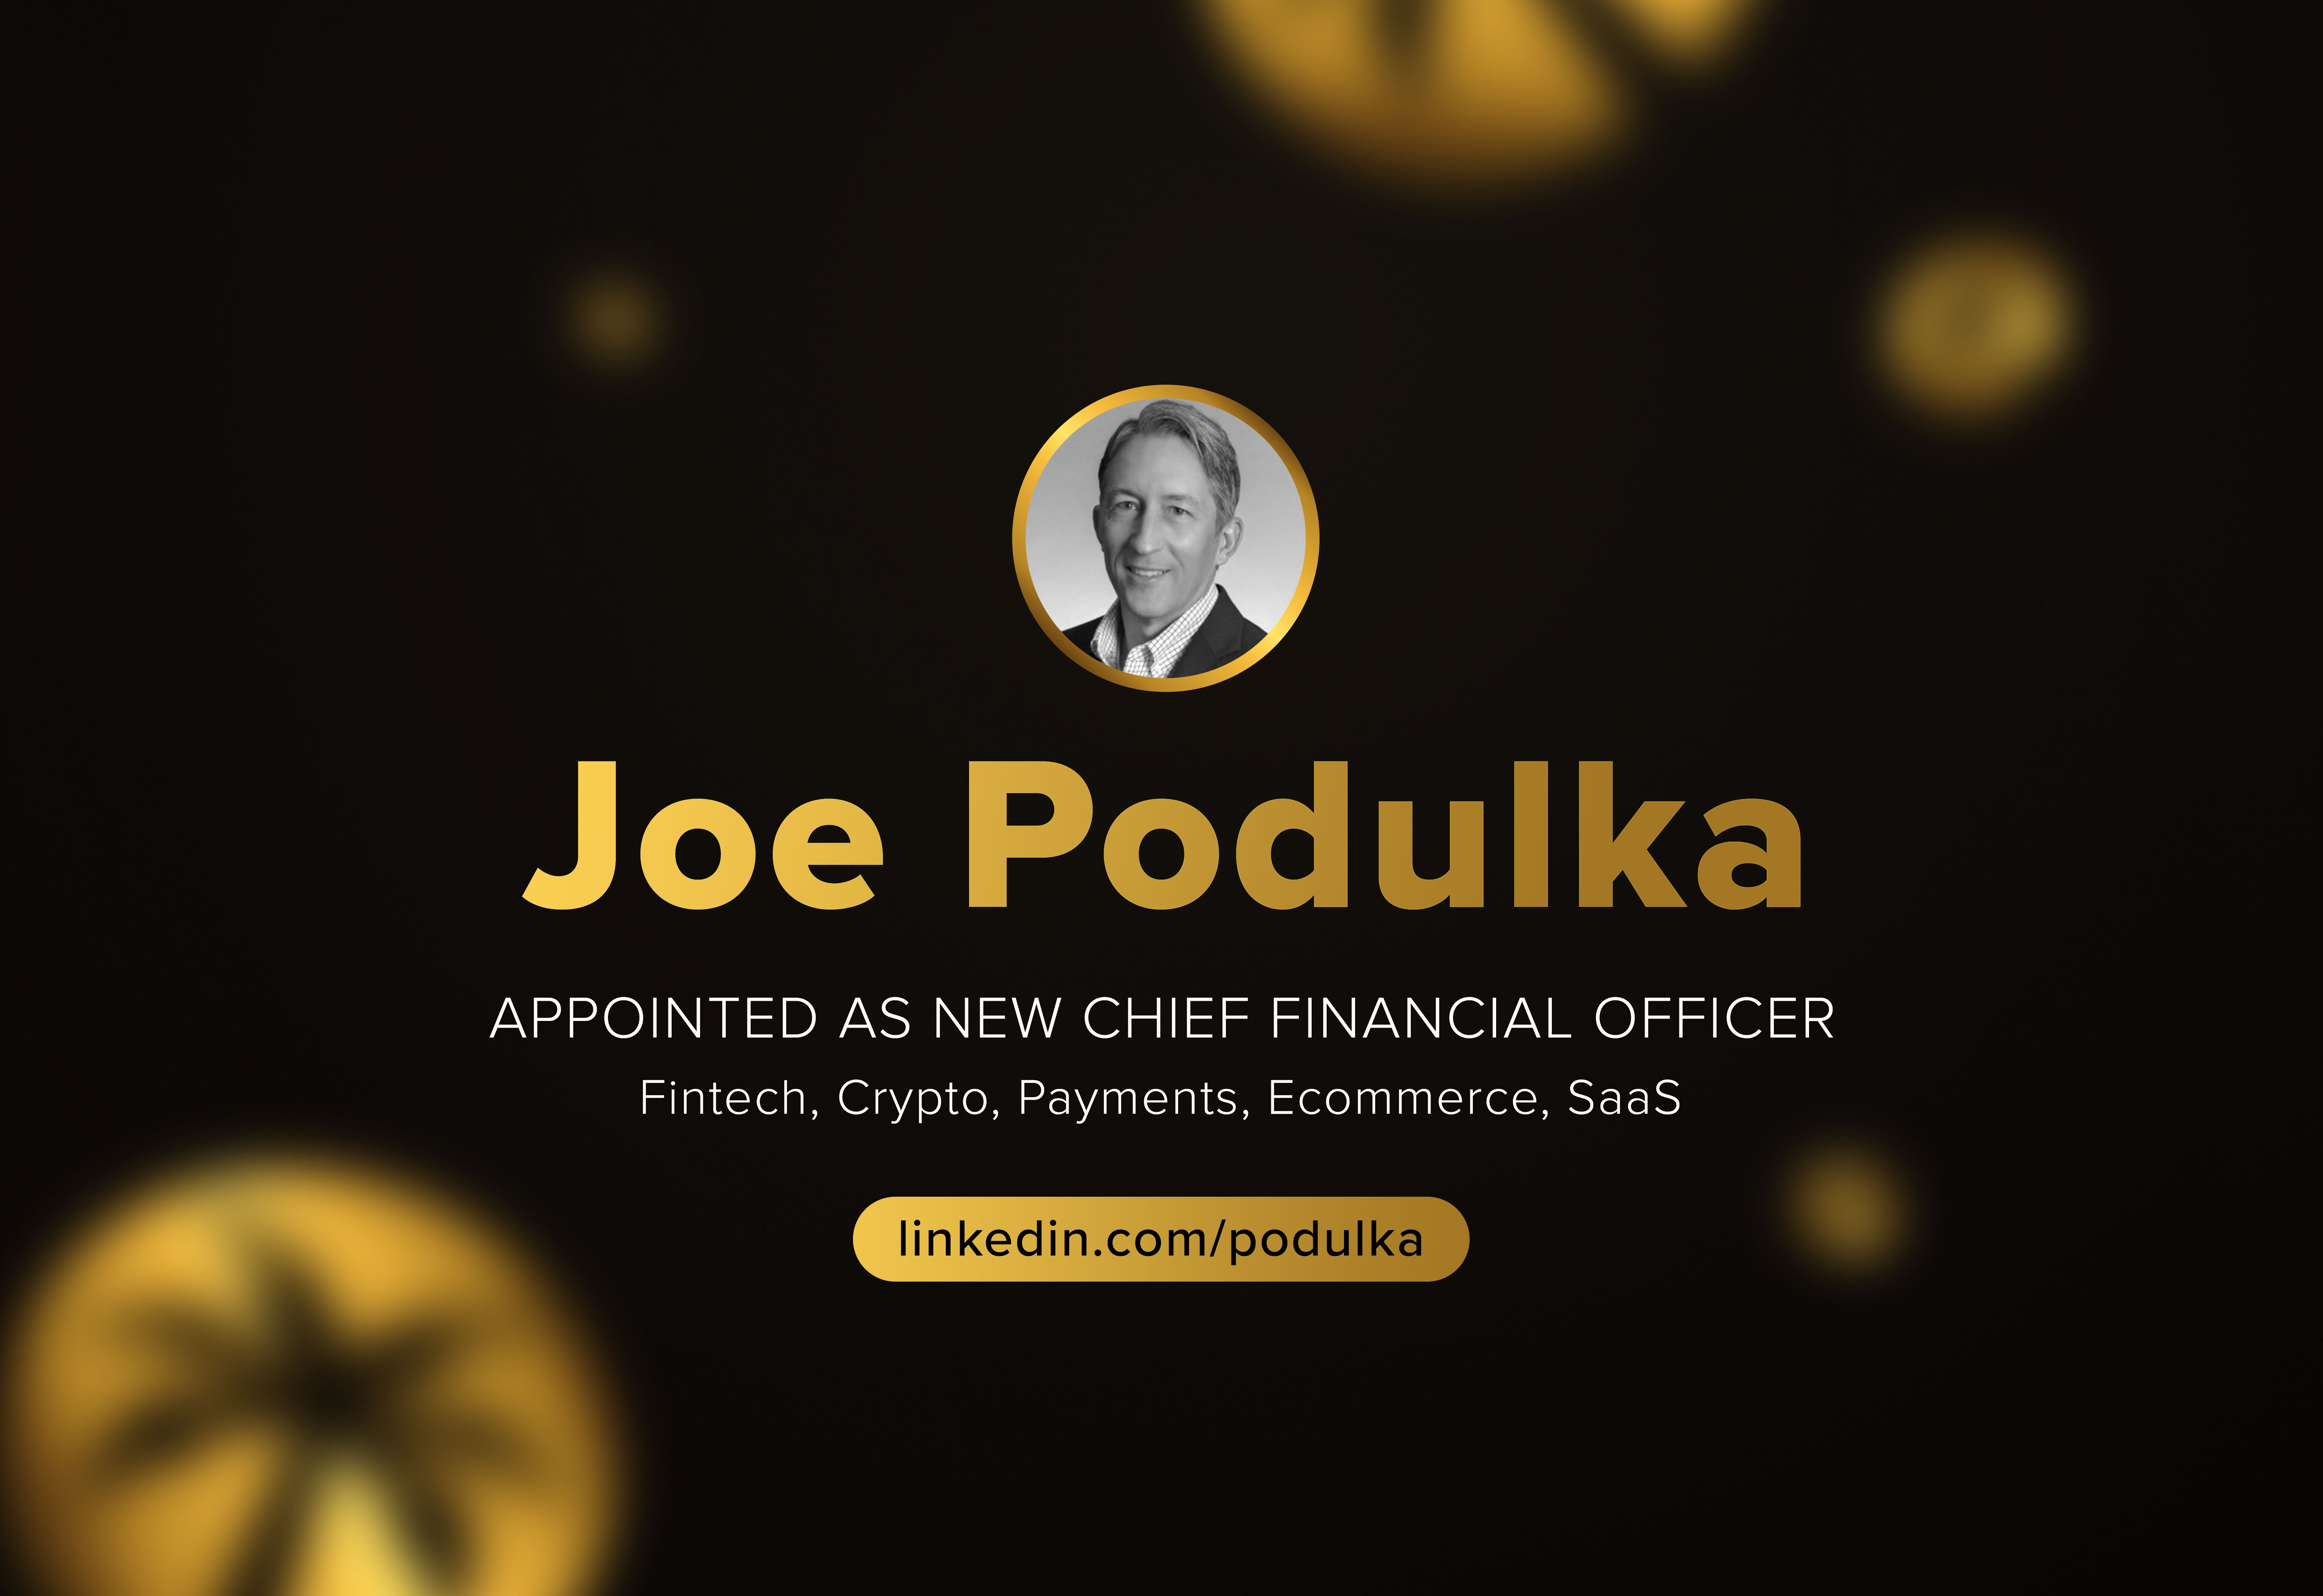 Vacay : Joe Podulka Appointed as New Chief Financial Officer